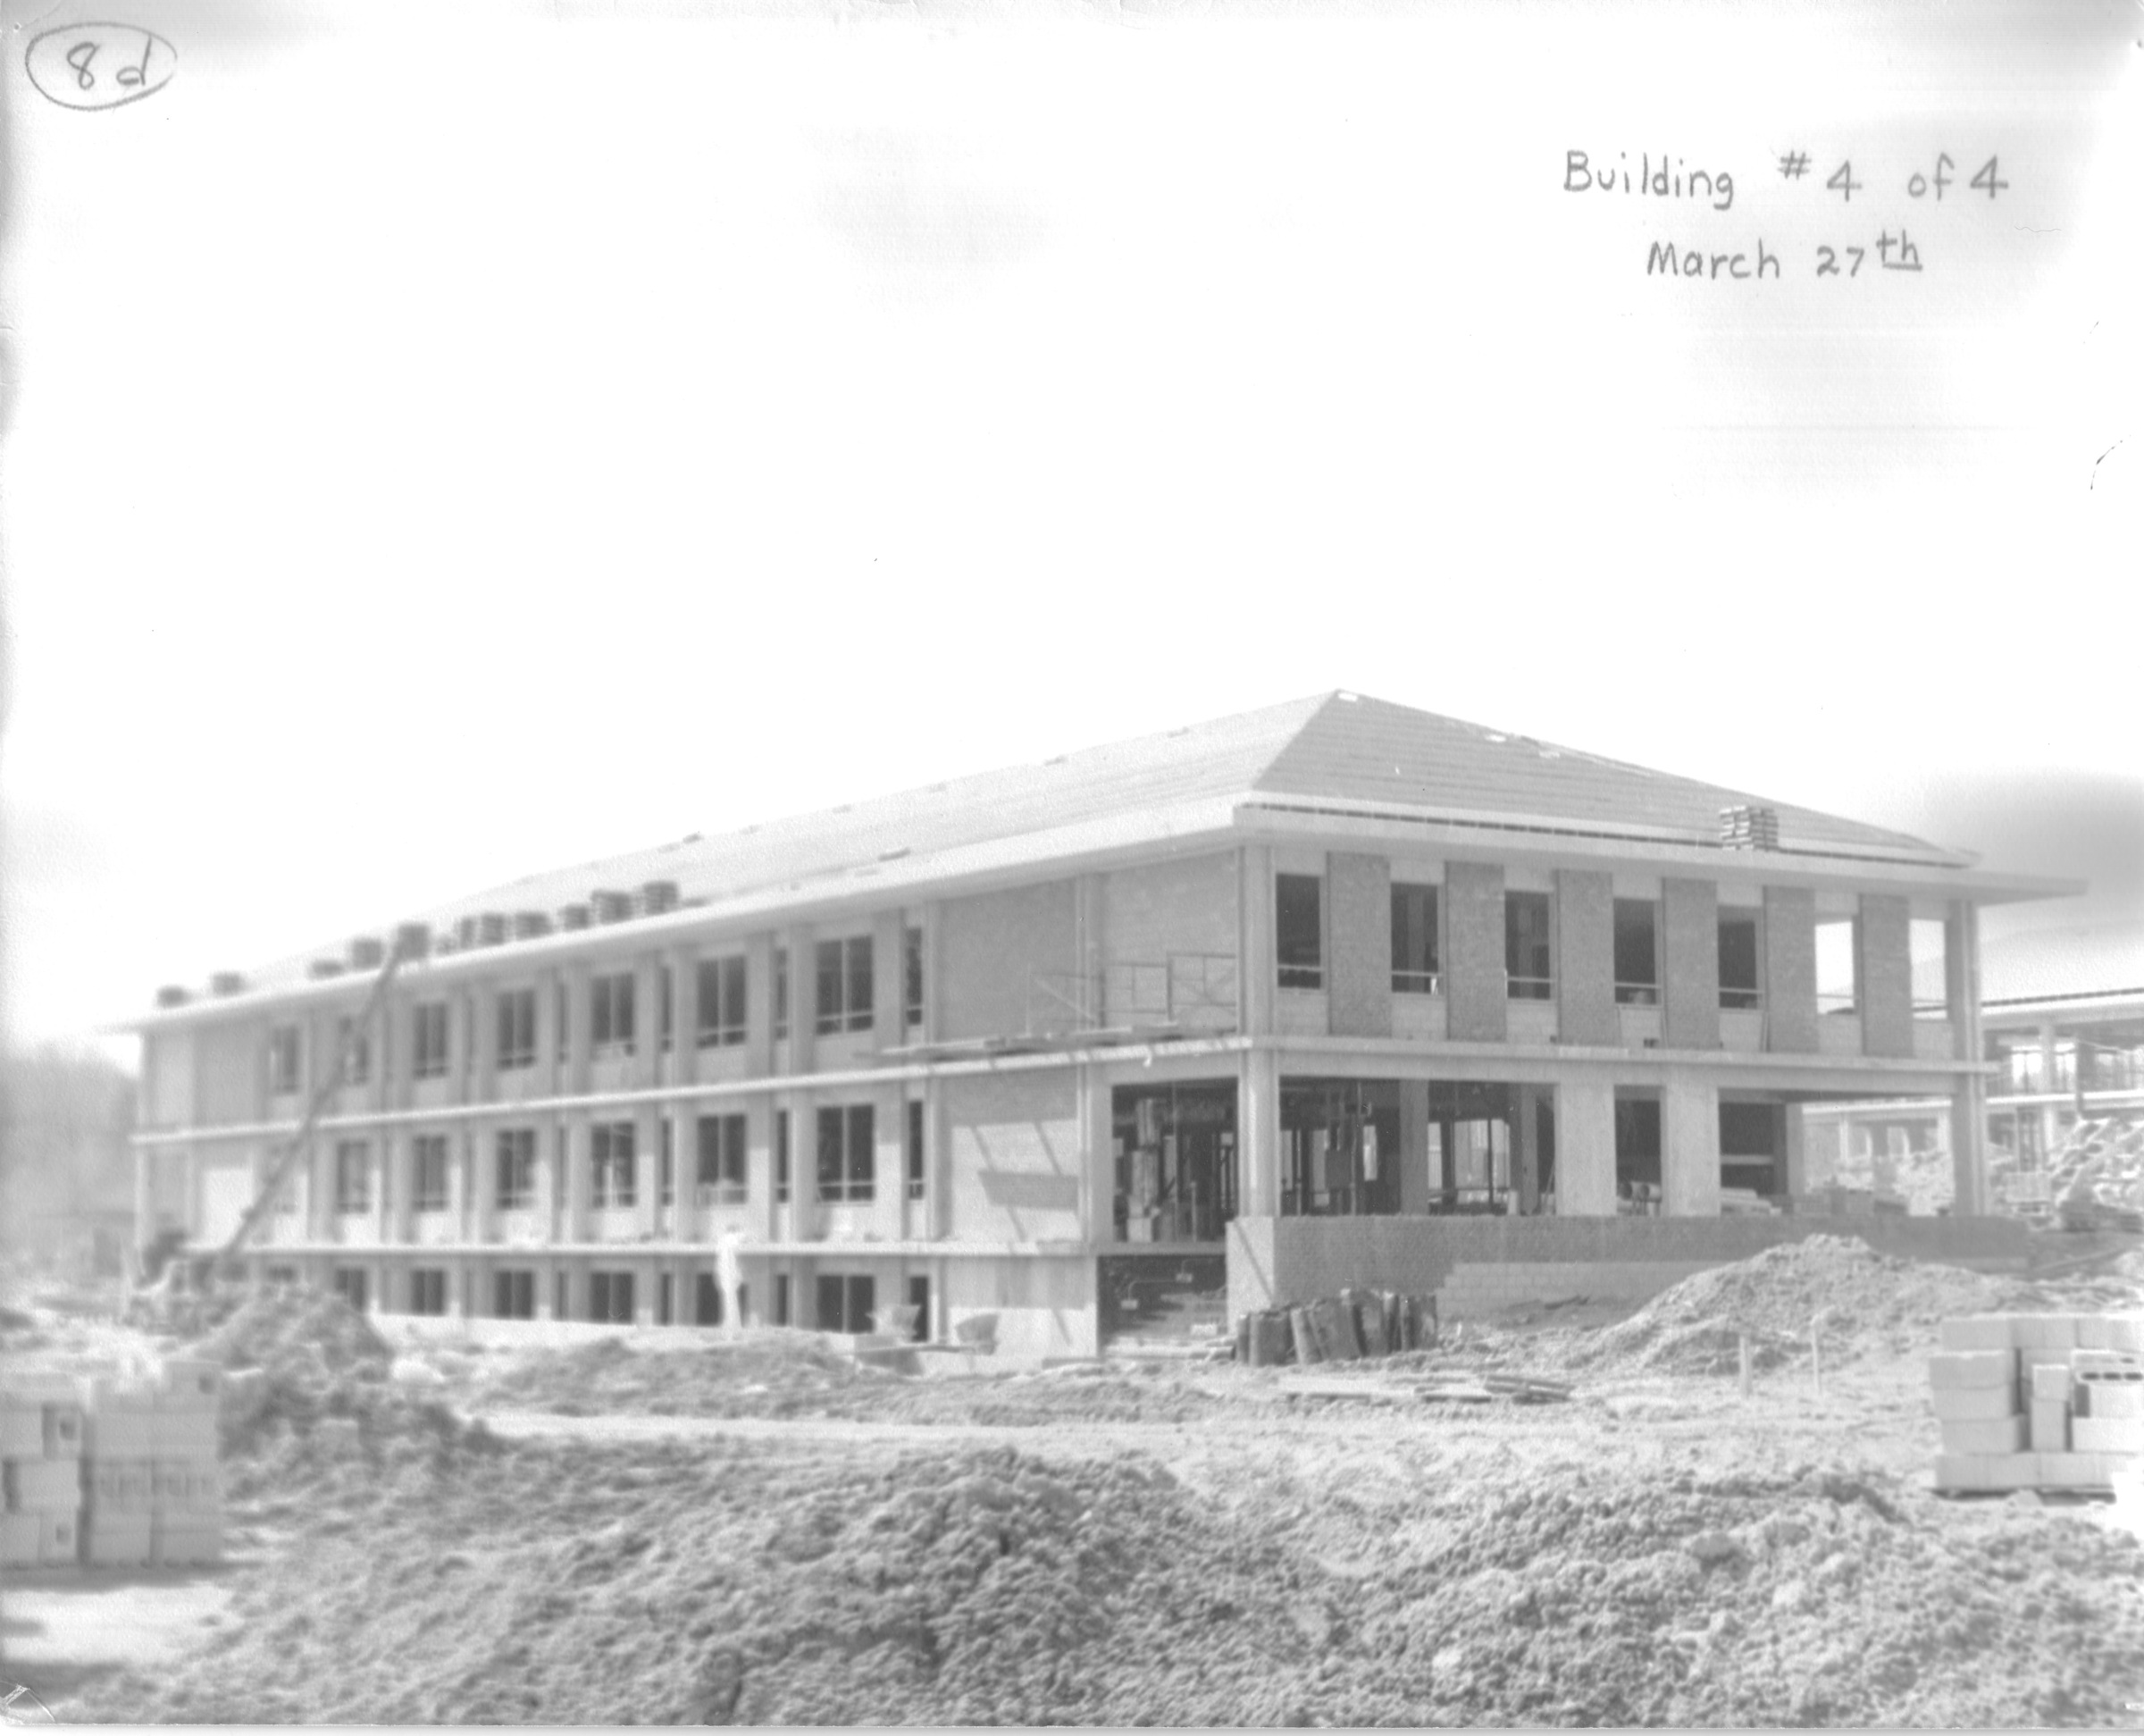 South Building, construction, March 27, 1964